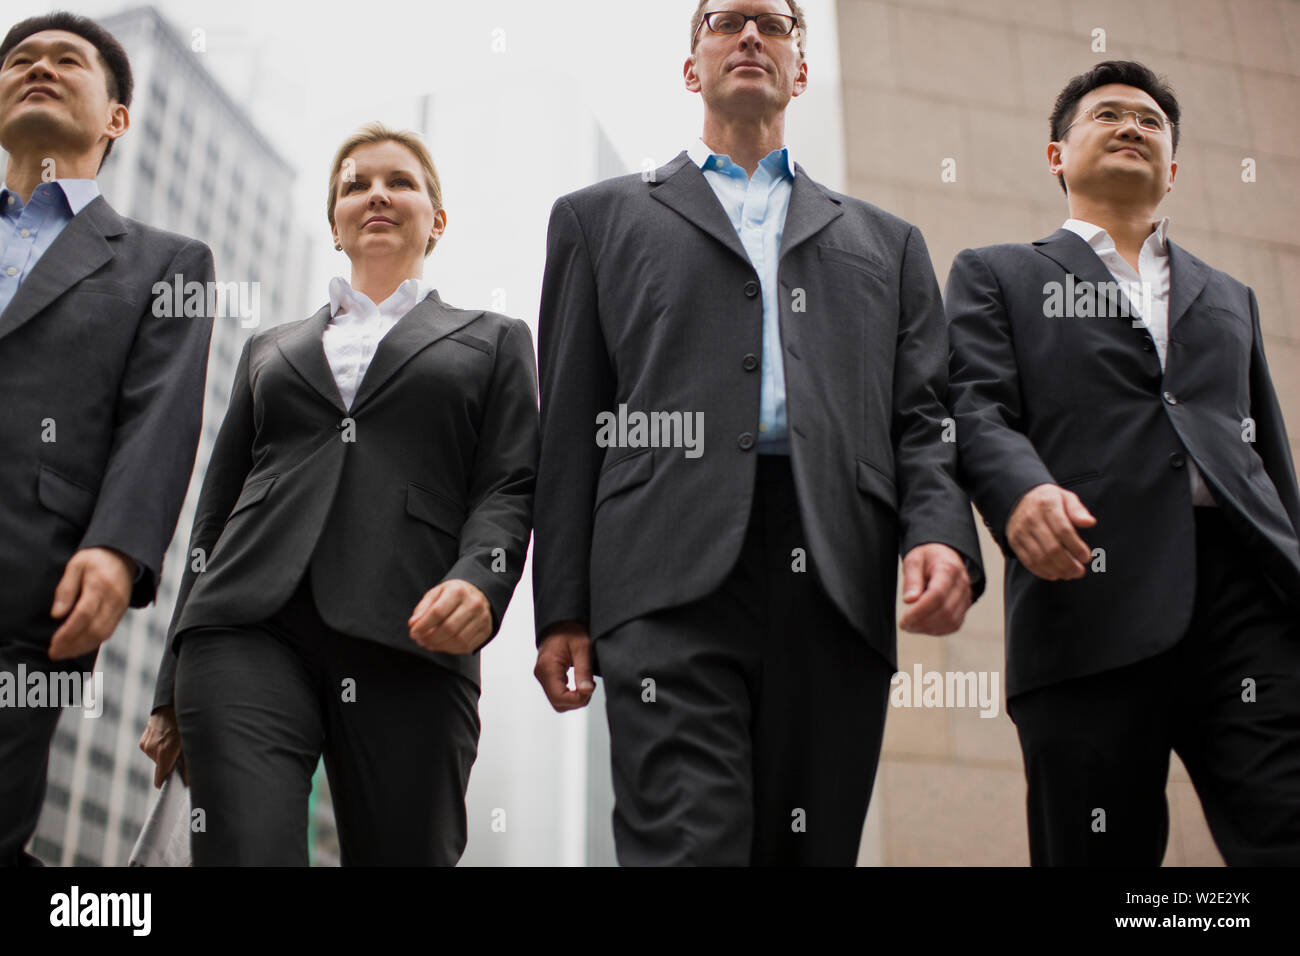 Four confident businesspeople walking side by side through the city. - Stock Image